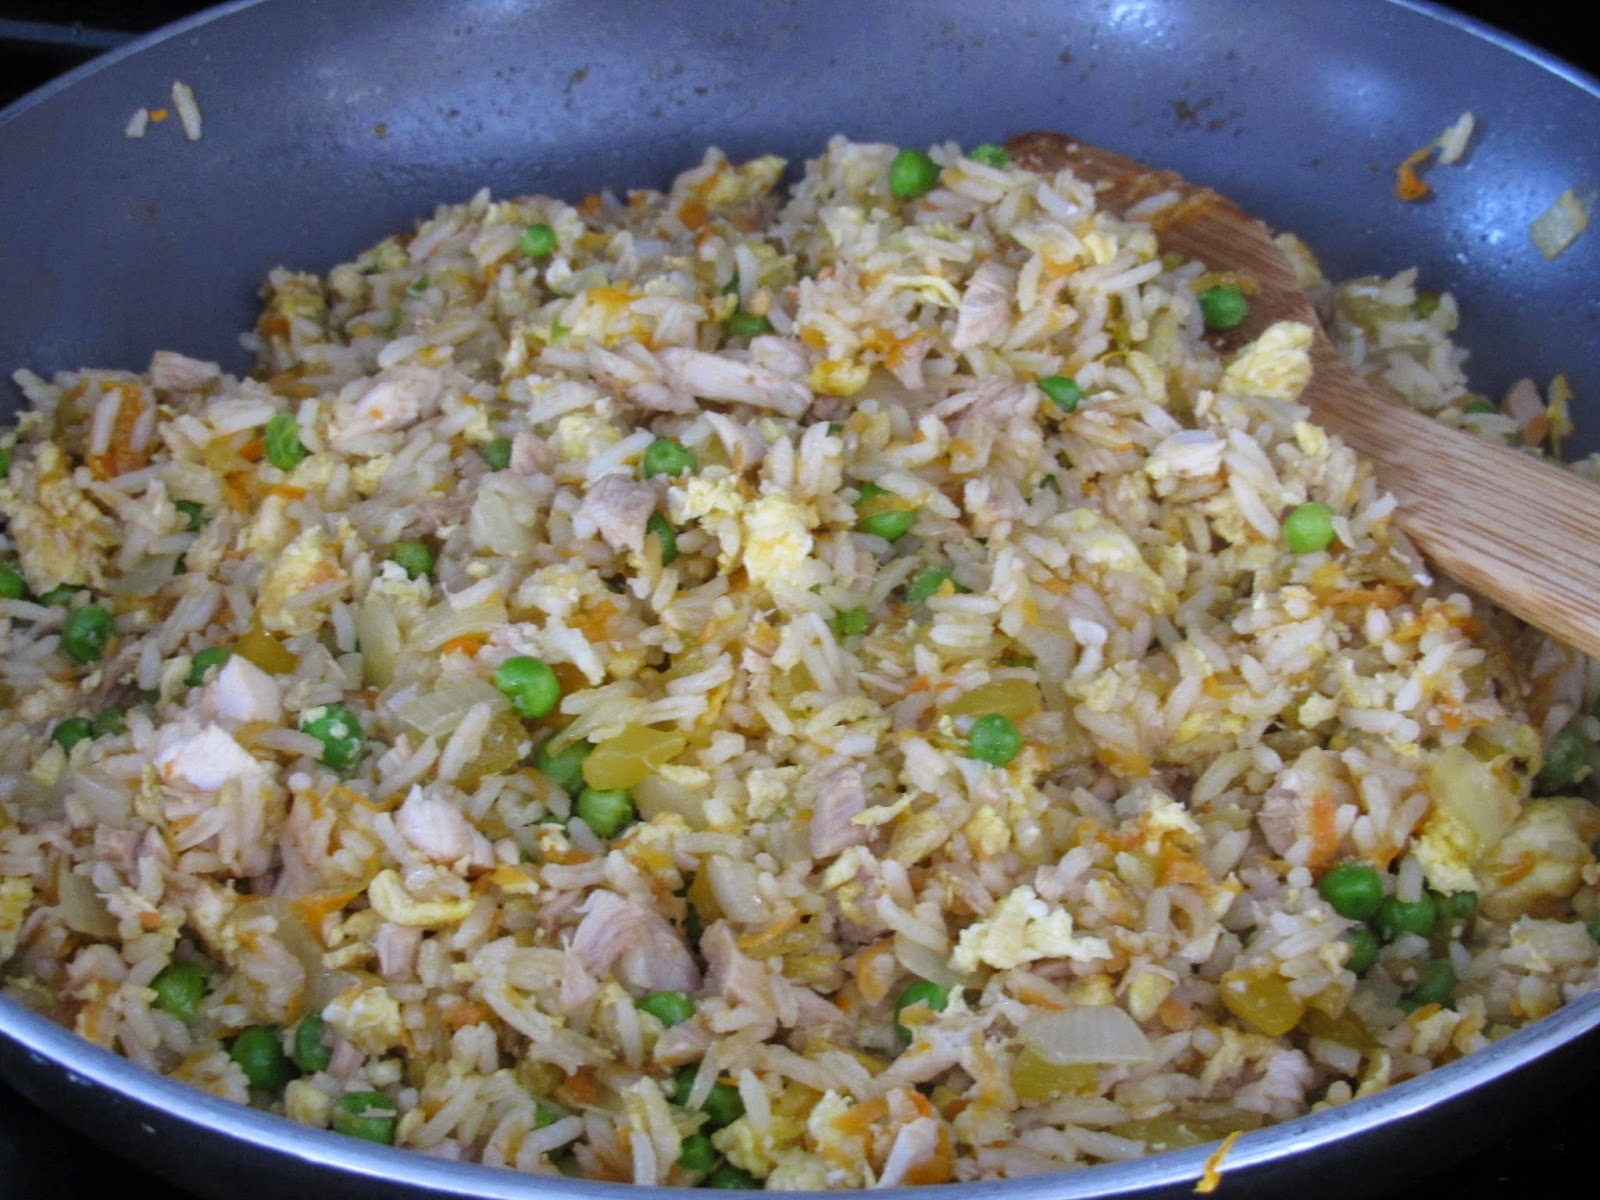 Gluten Free Fried Rice with Vegetables and Chicken